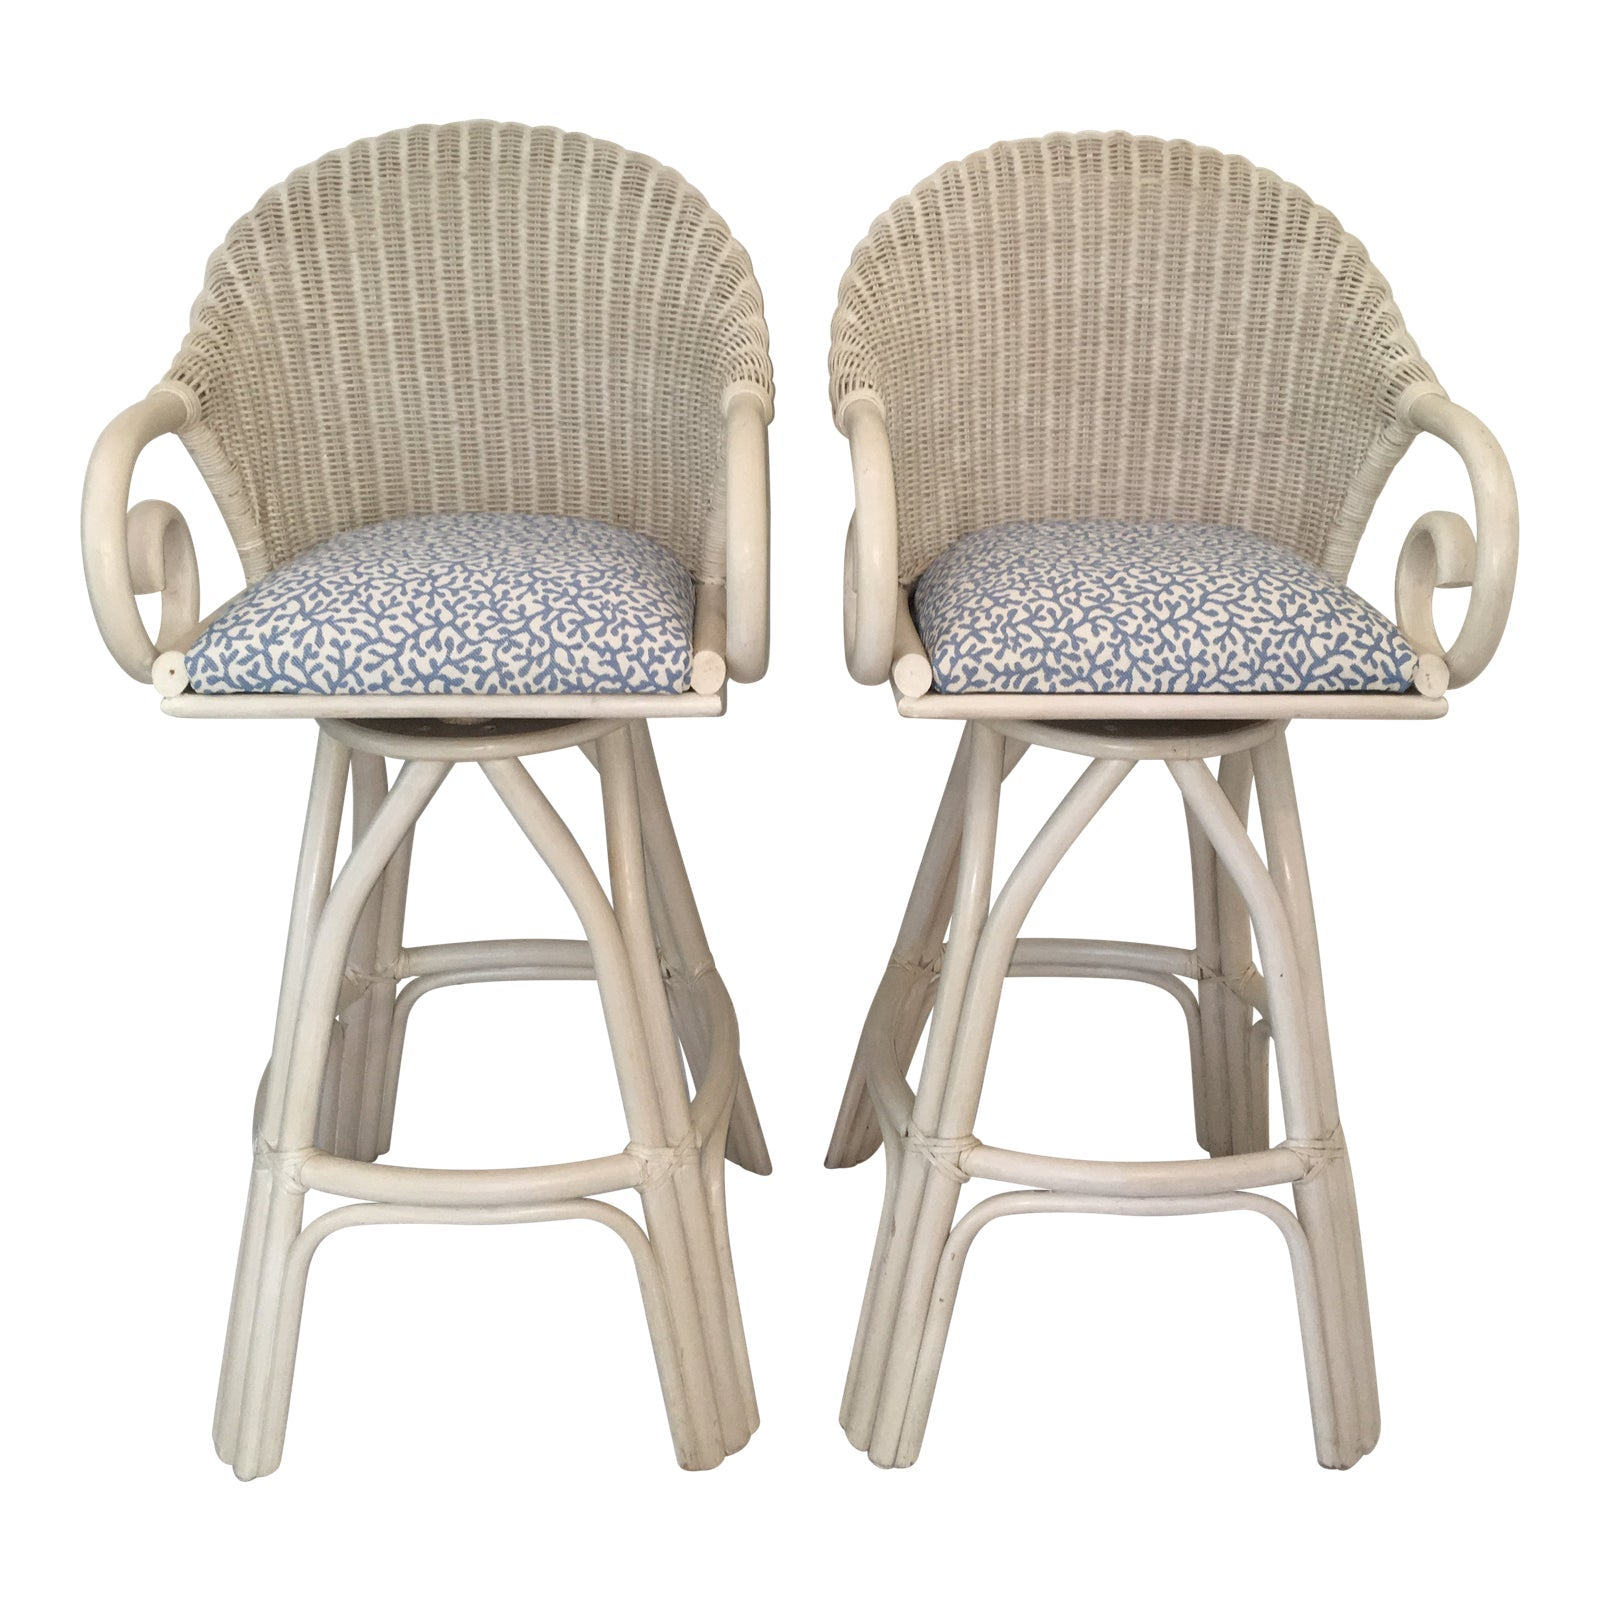 20th Century Shabby Chic White Wicker Bar Stools - a Pair